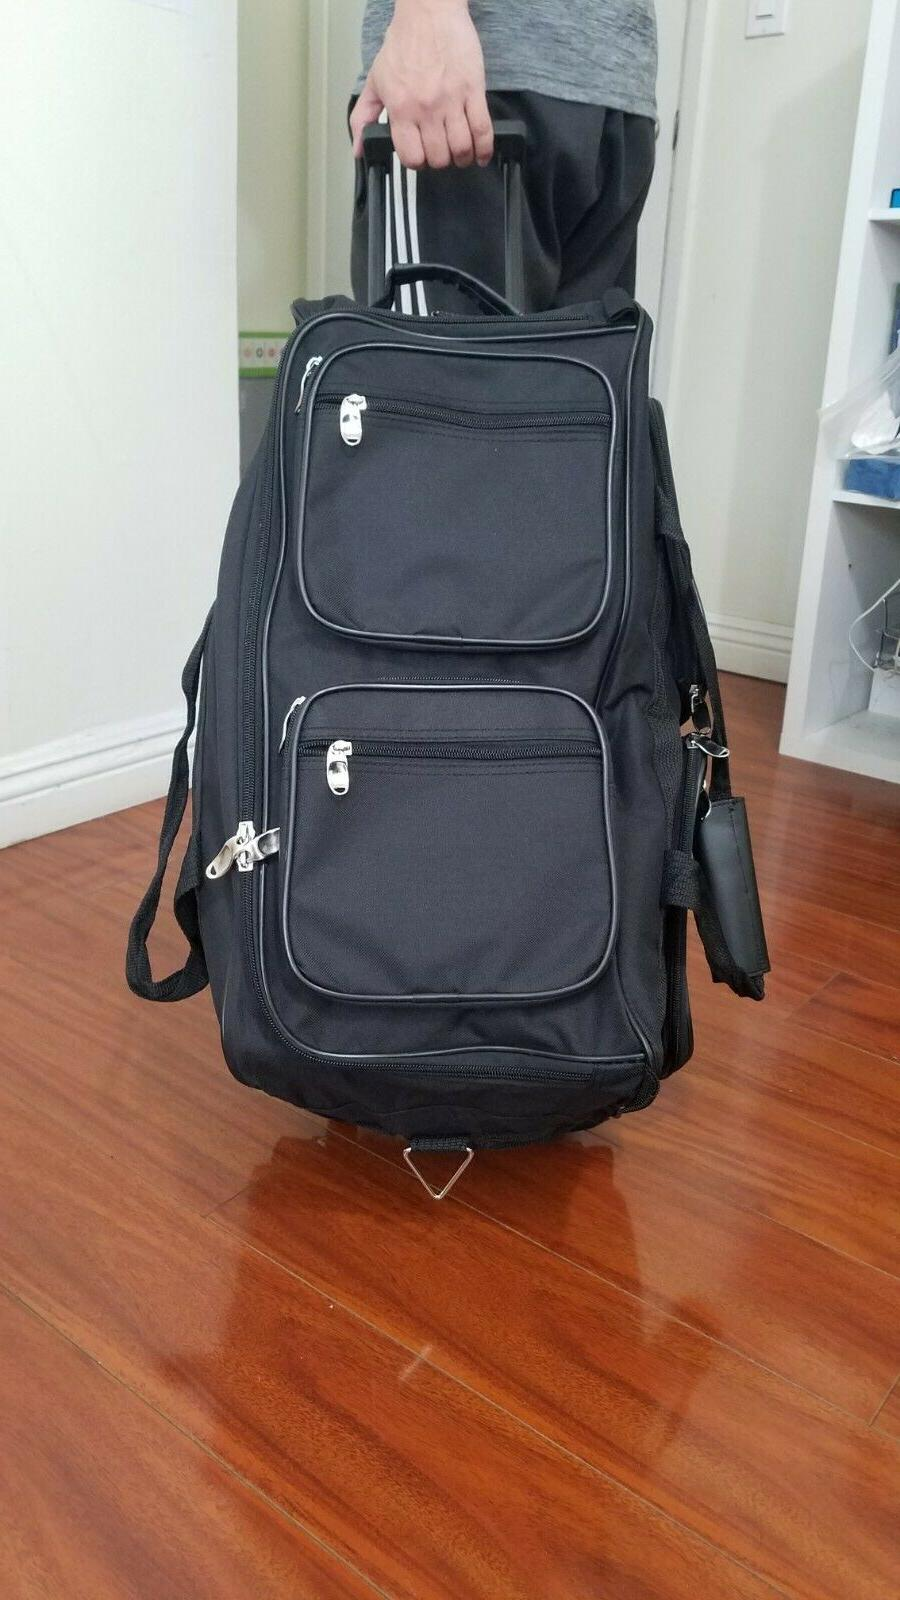 22 black rolling duffel bag with 5